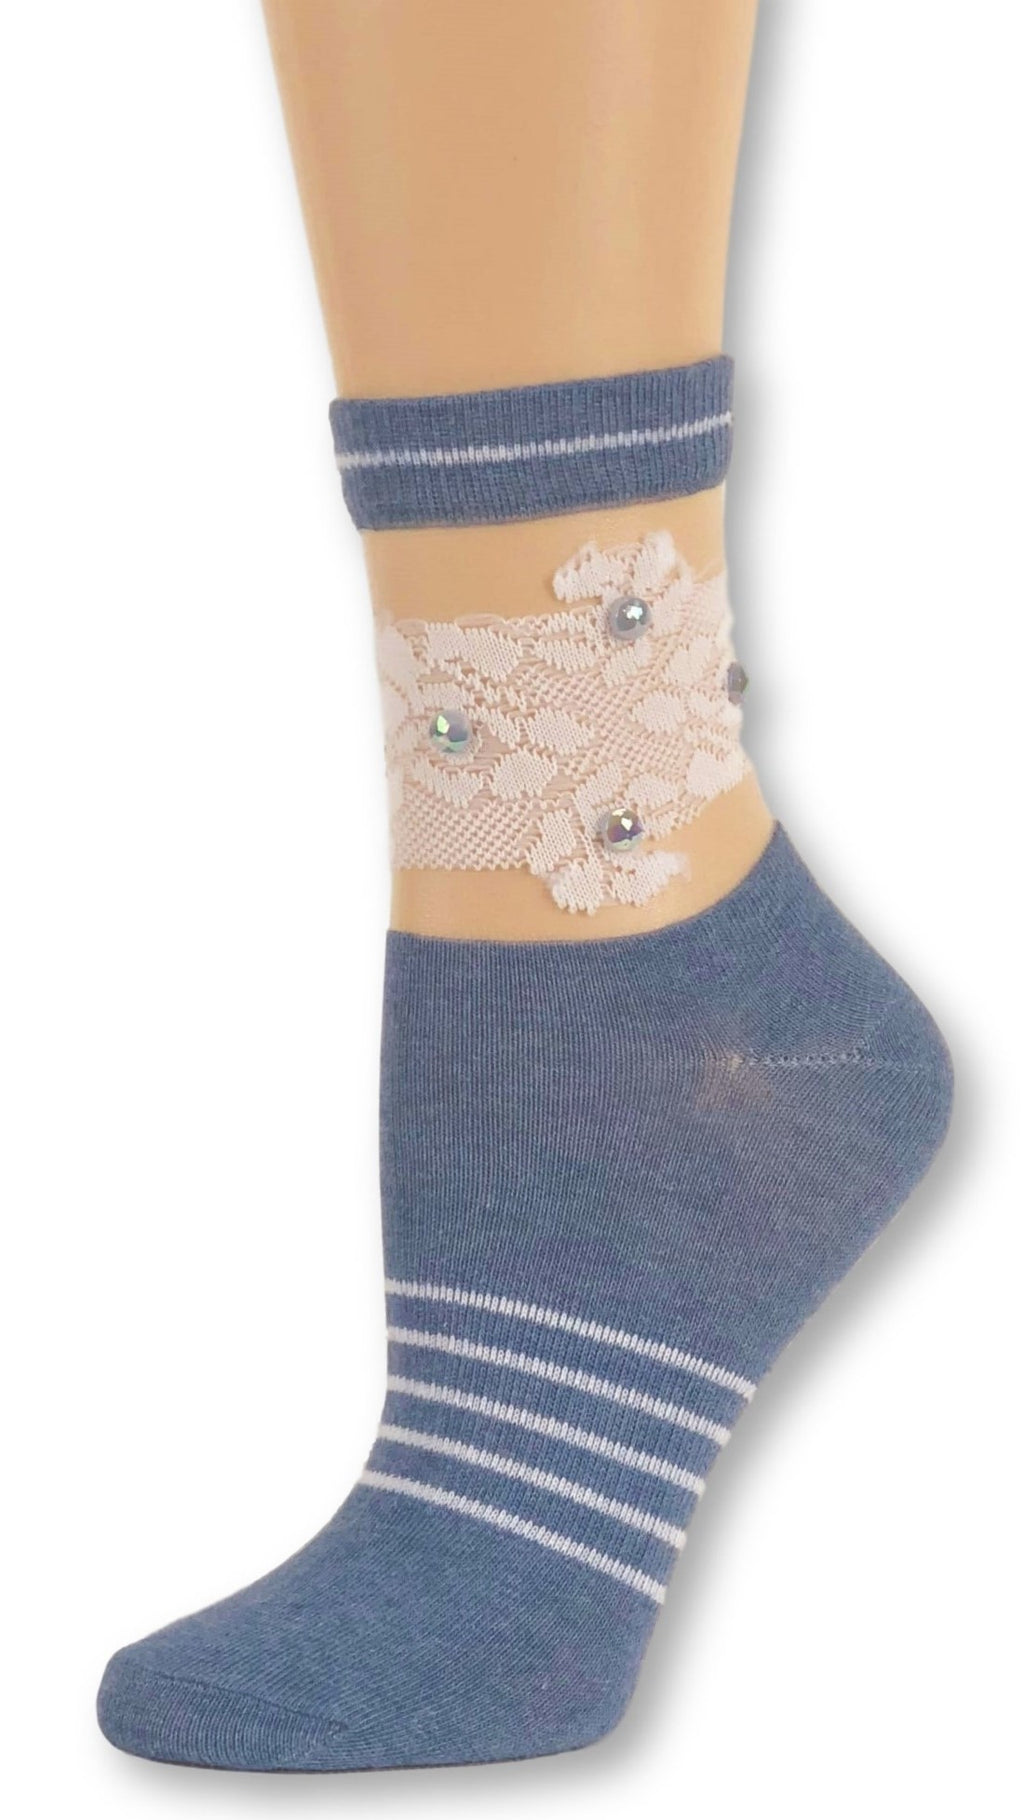 White Rose Blue Custom Sheer Socks with beads - Global Trendz Fashion®